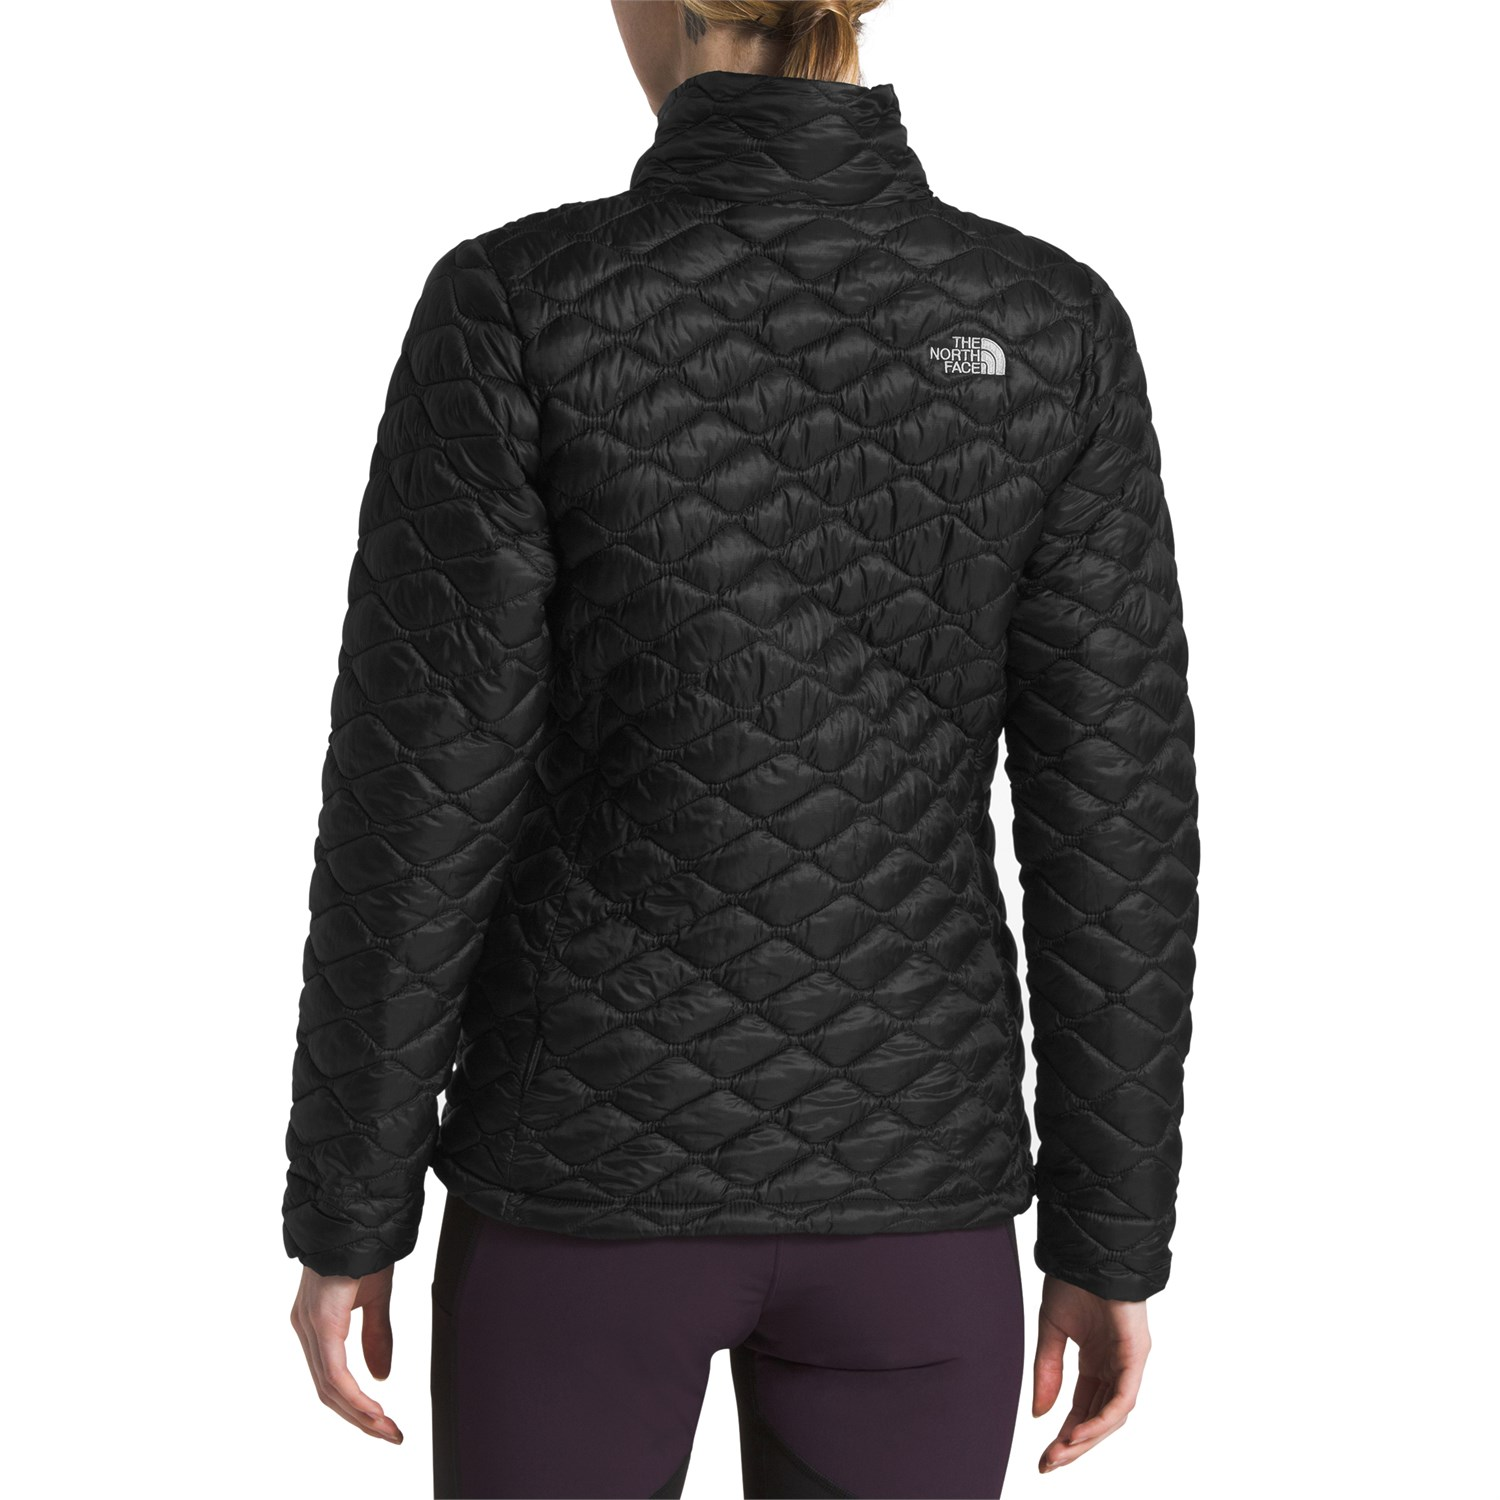 a909d4cef The North Face ThermoBall™ Jacket - Women's